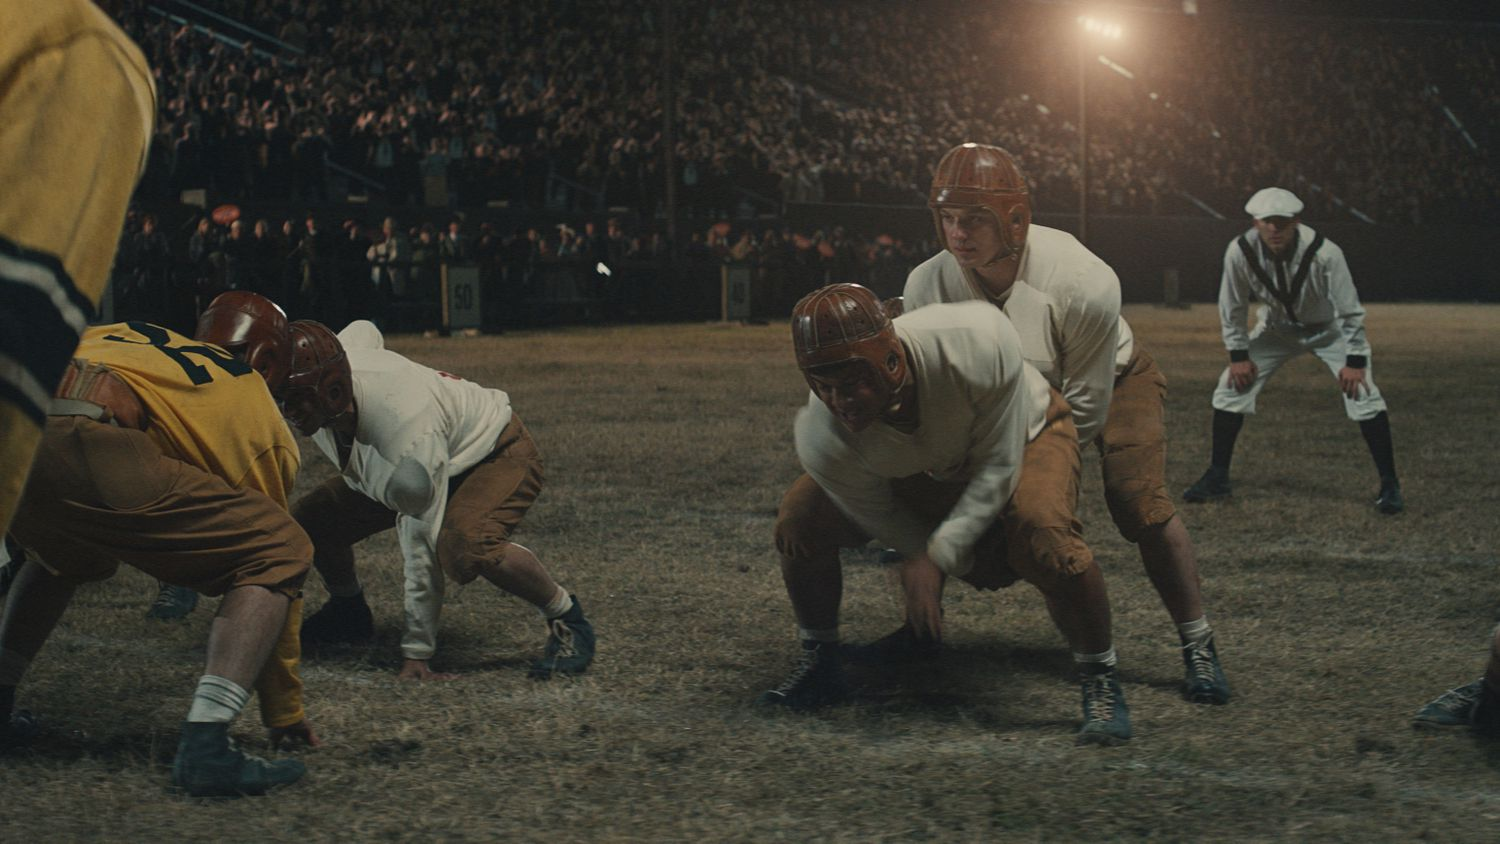 """The Mighty Mites line up on offense against the Amarillo Sandies in a scene from the forthcoming movie about Texas high school football titled """"12 Mighty Orphans."""""""